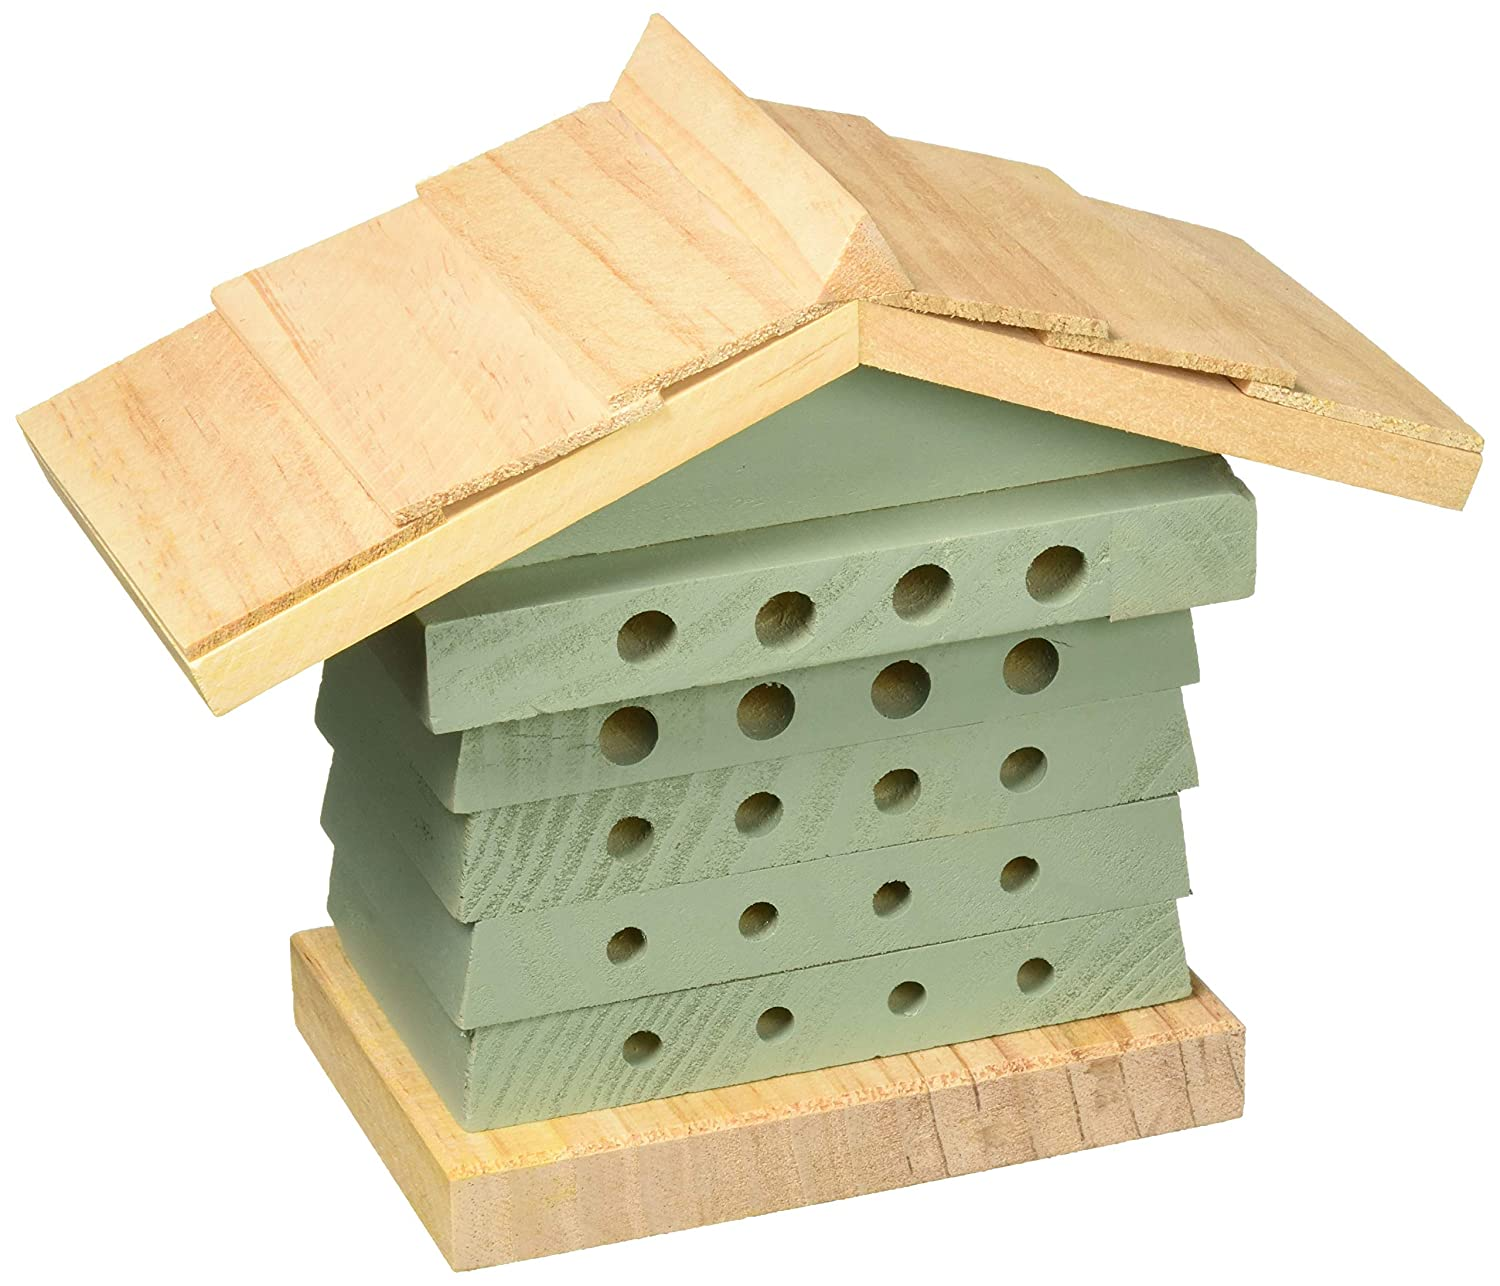 Wildlife WorldBee Hyve for Mason Bees, Leafcutter Bees and Orchard Bees BEVSB